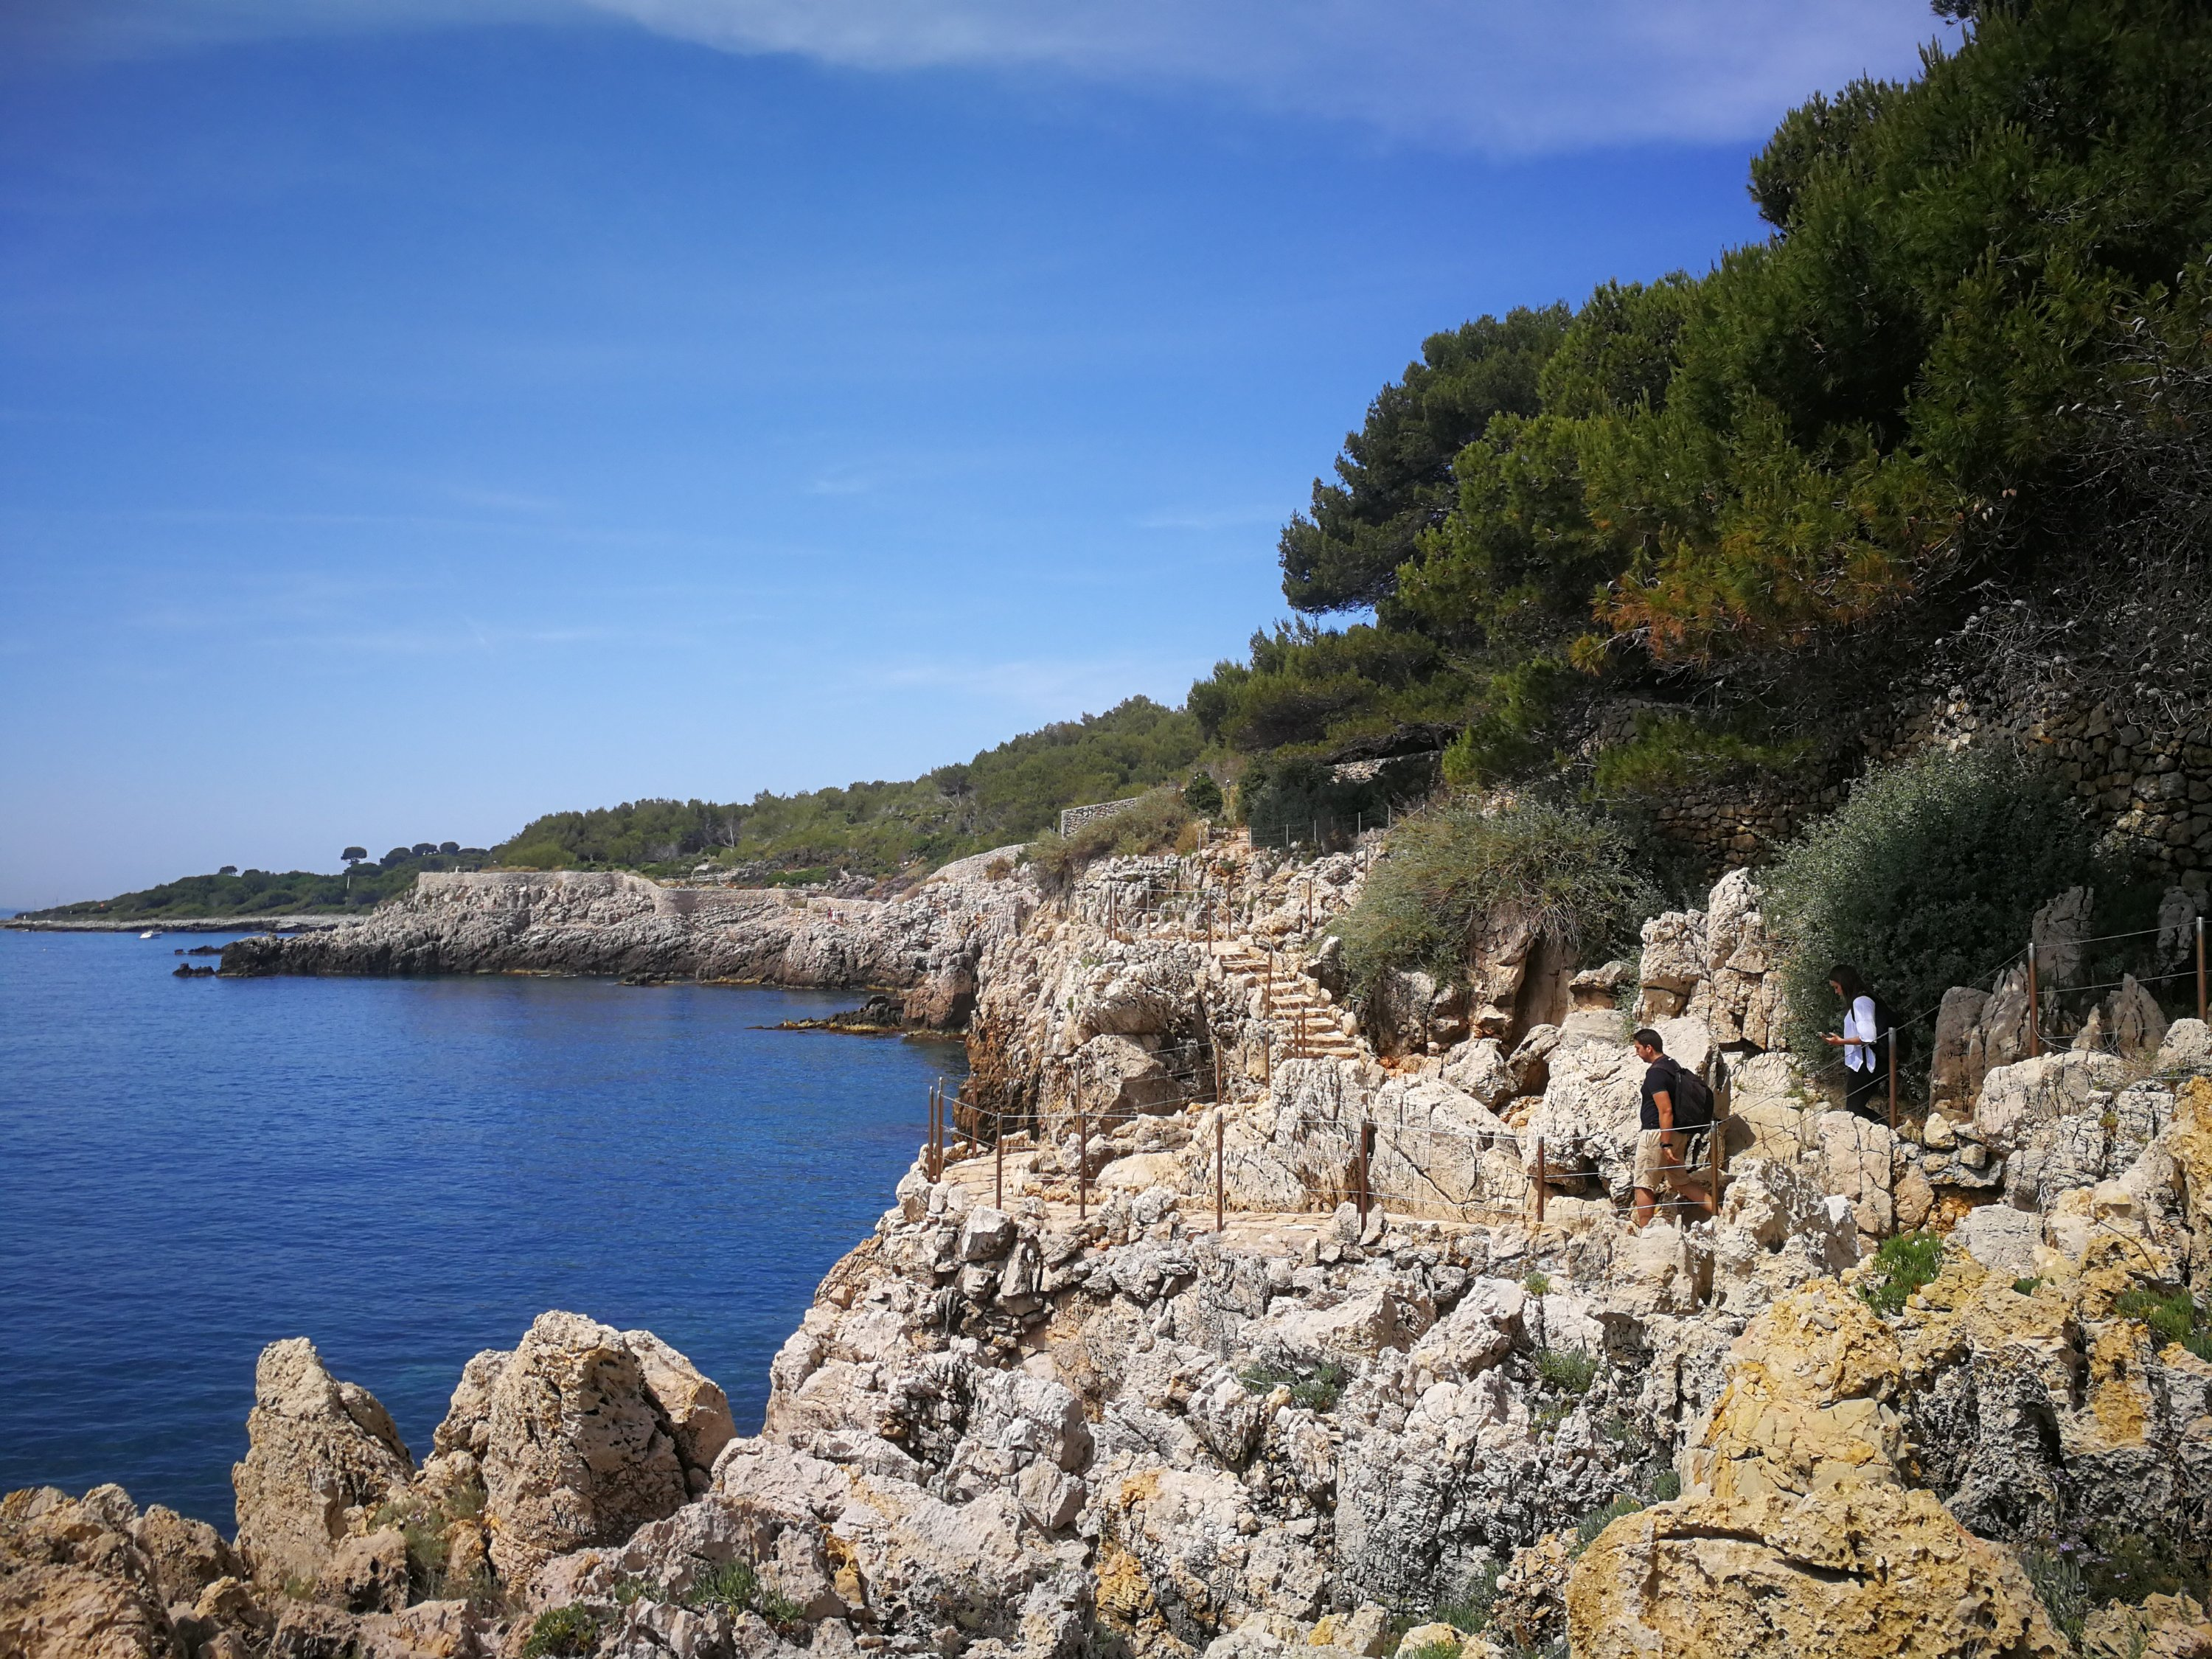 Sentier du Littoral - Provenza on the road